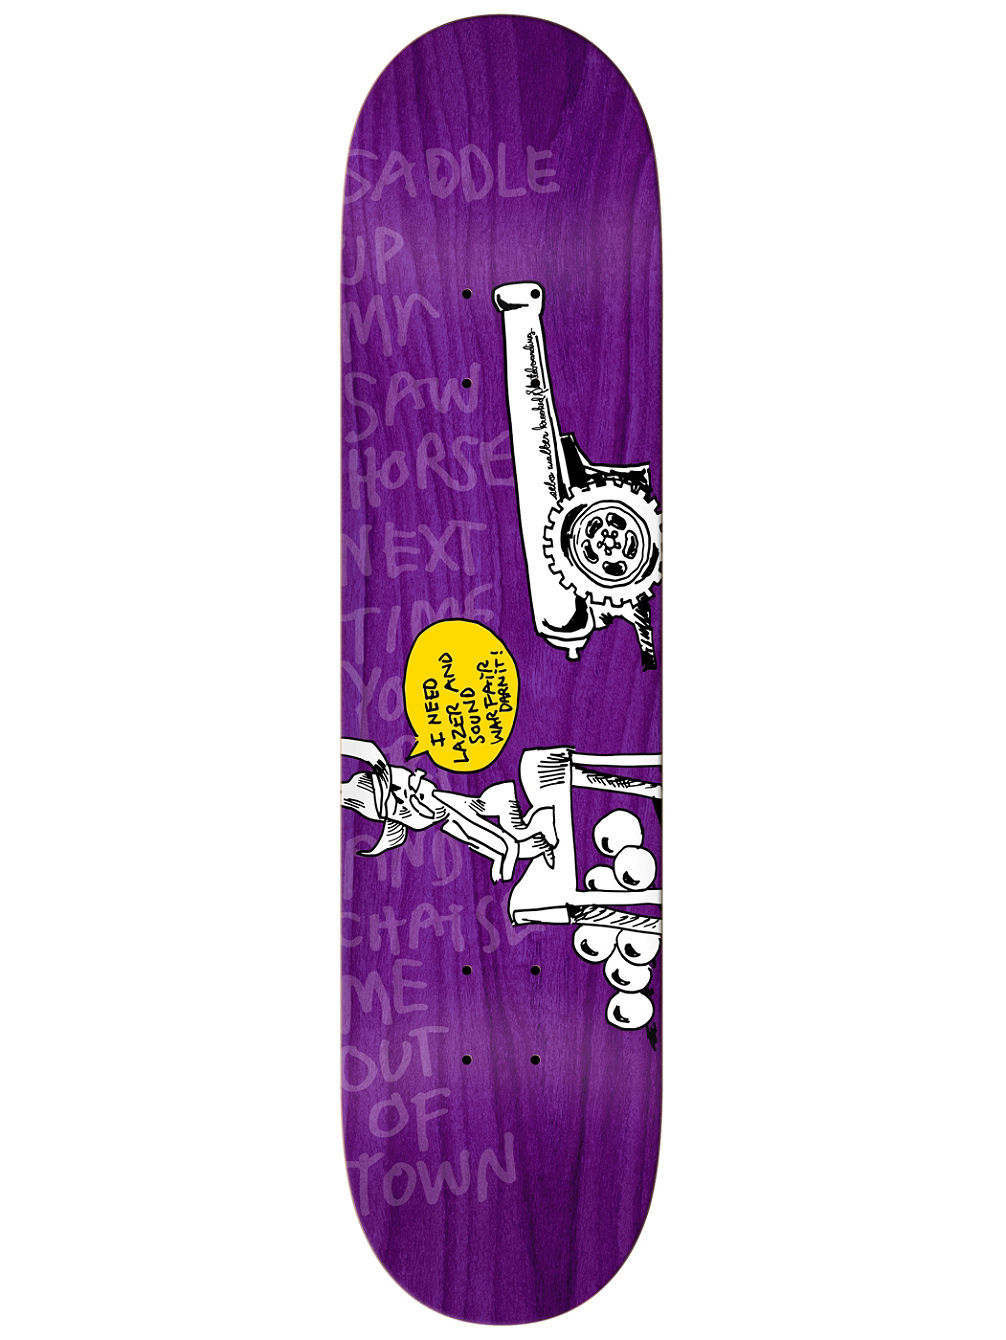 "Horsepower S.Walker 8.18"" Skate Deck"